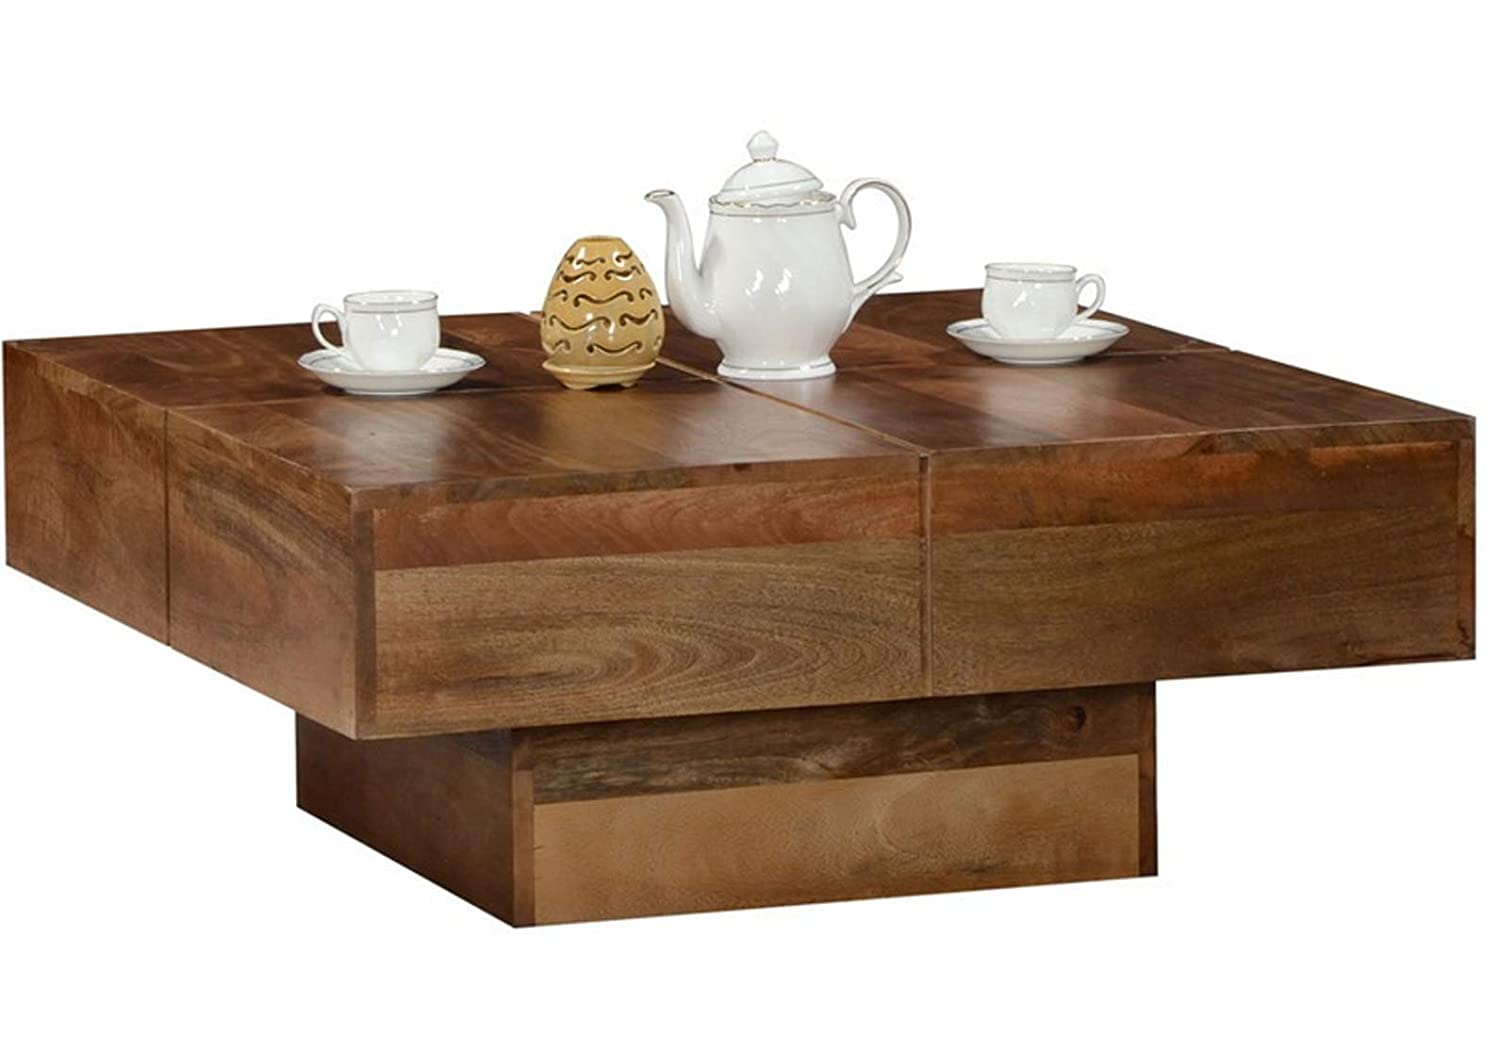 Fizzy Center Coffee Table for Home Living Room Furniture (Natural Finish)